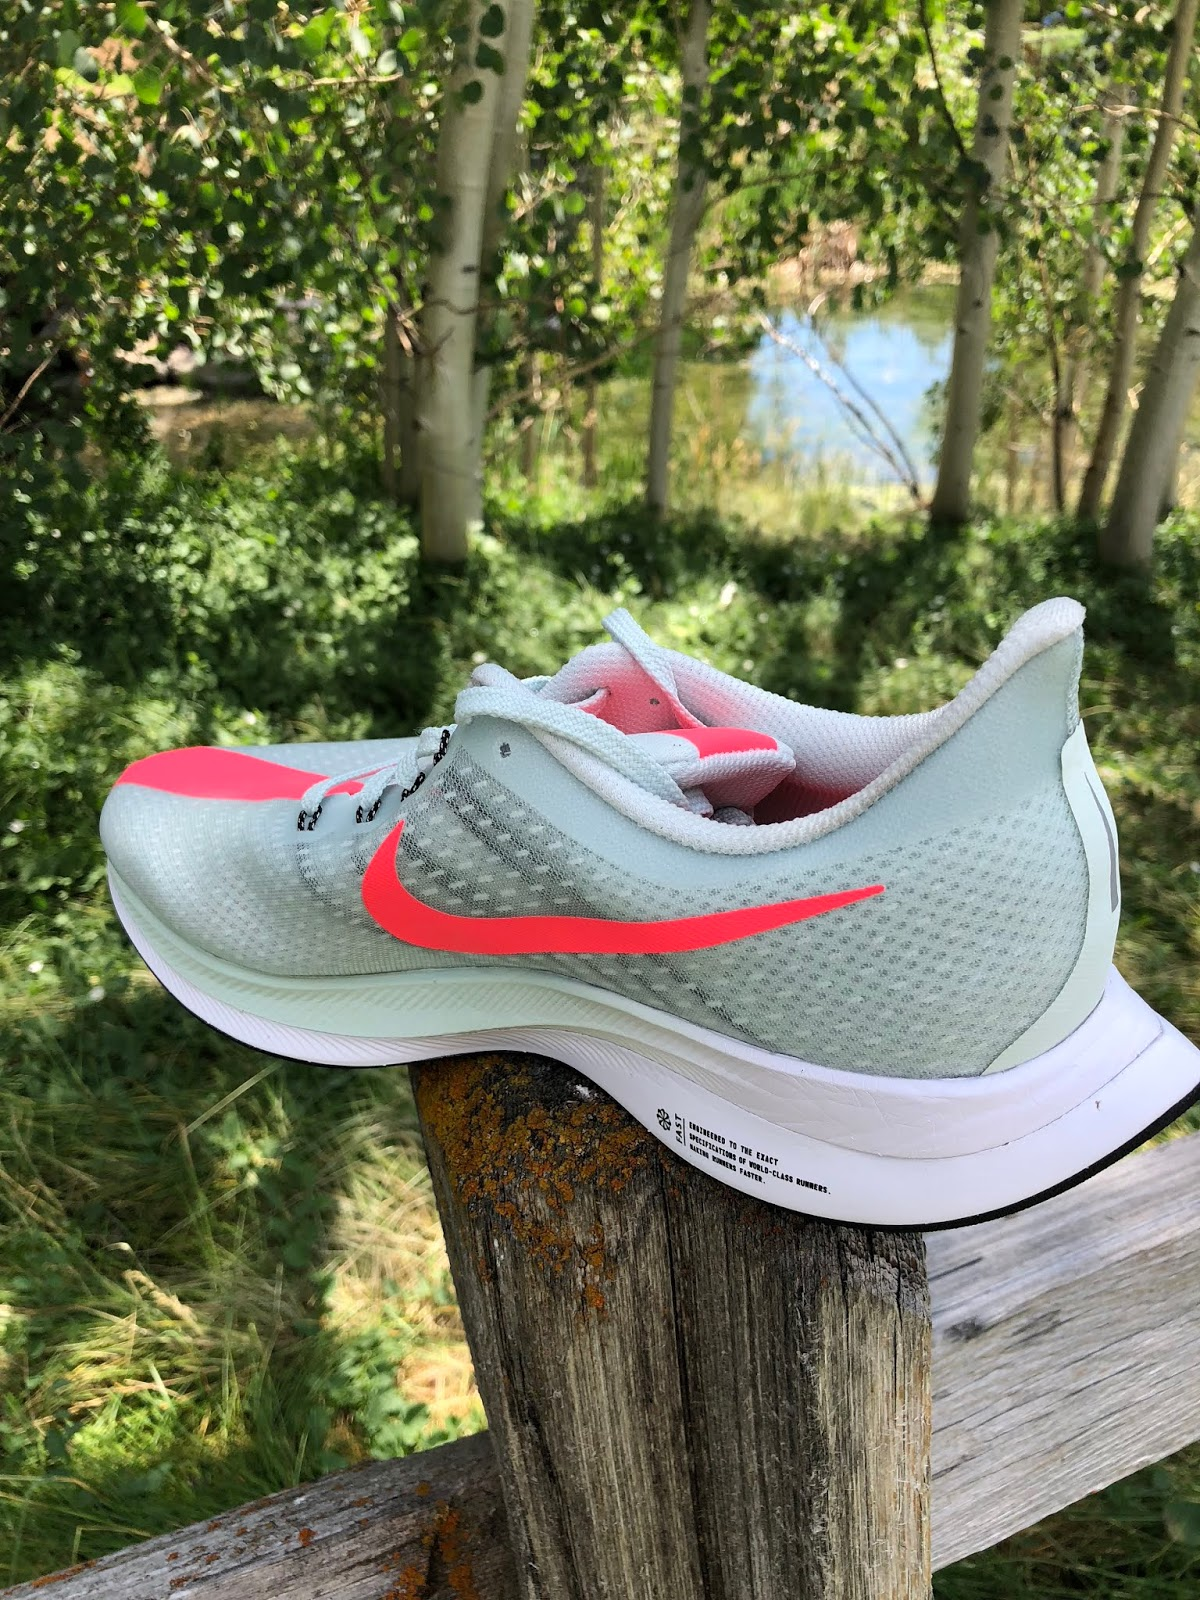 8c57c781253336 The swept back achilles collar is a distinctive feature of the Peg Turbo  and Pegasus 35. It does keep pressure off the achilles but feels a bit open  at the ...